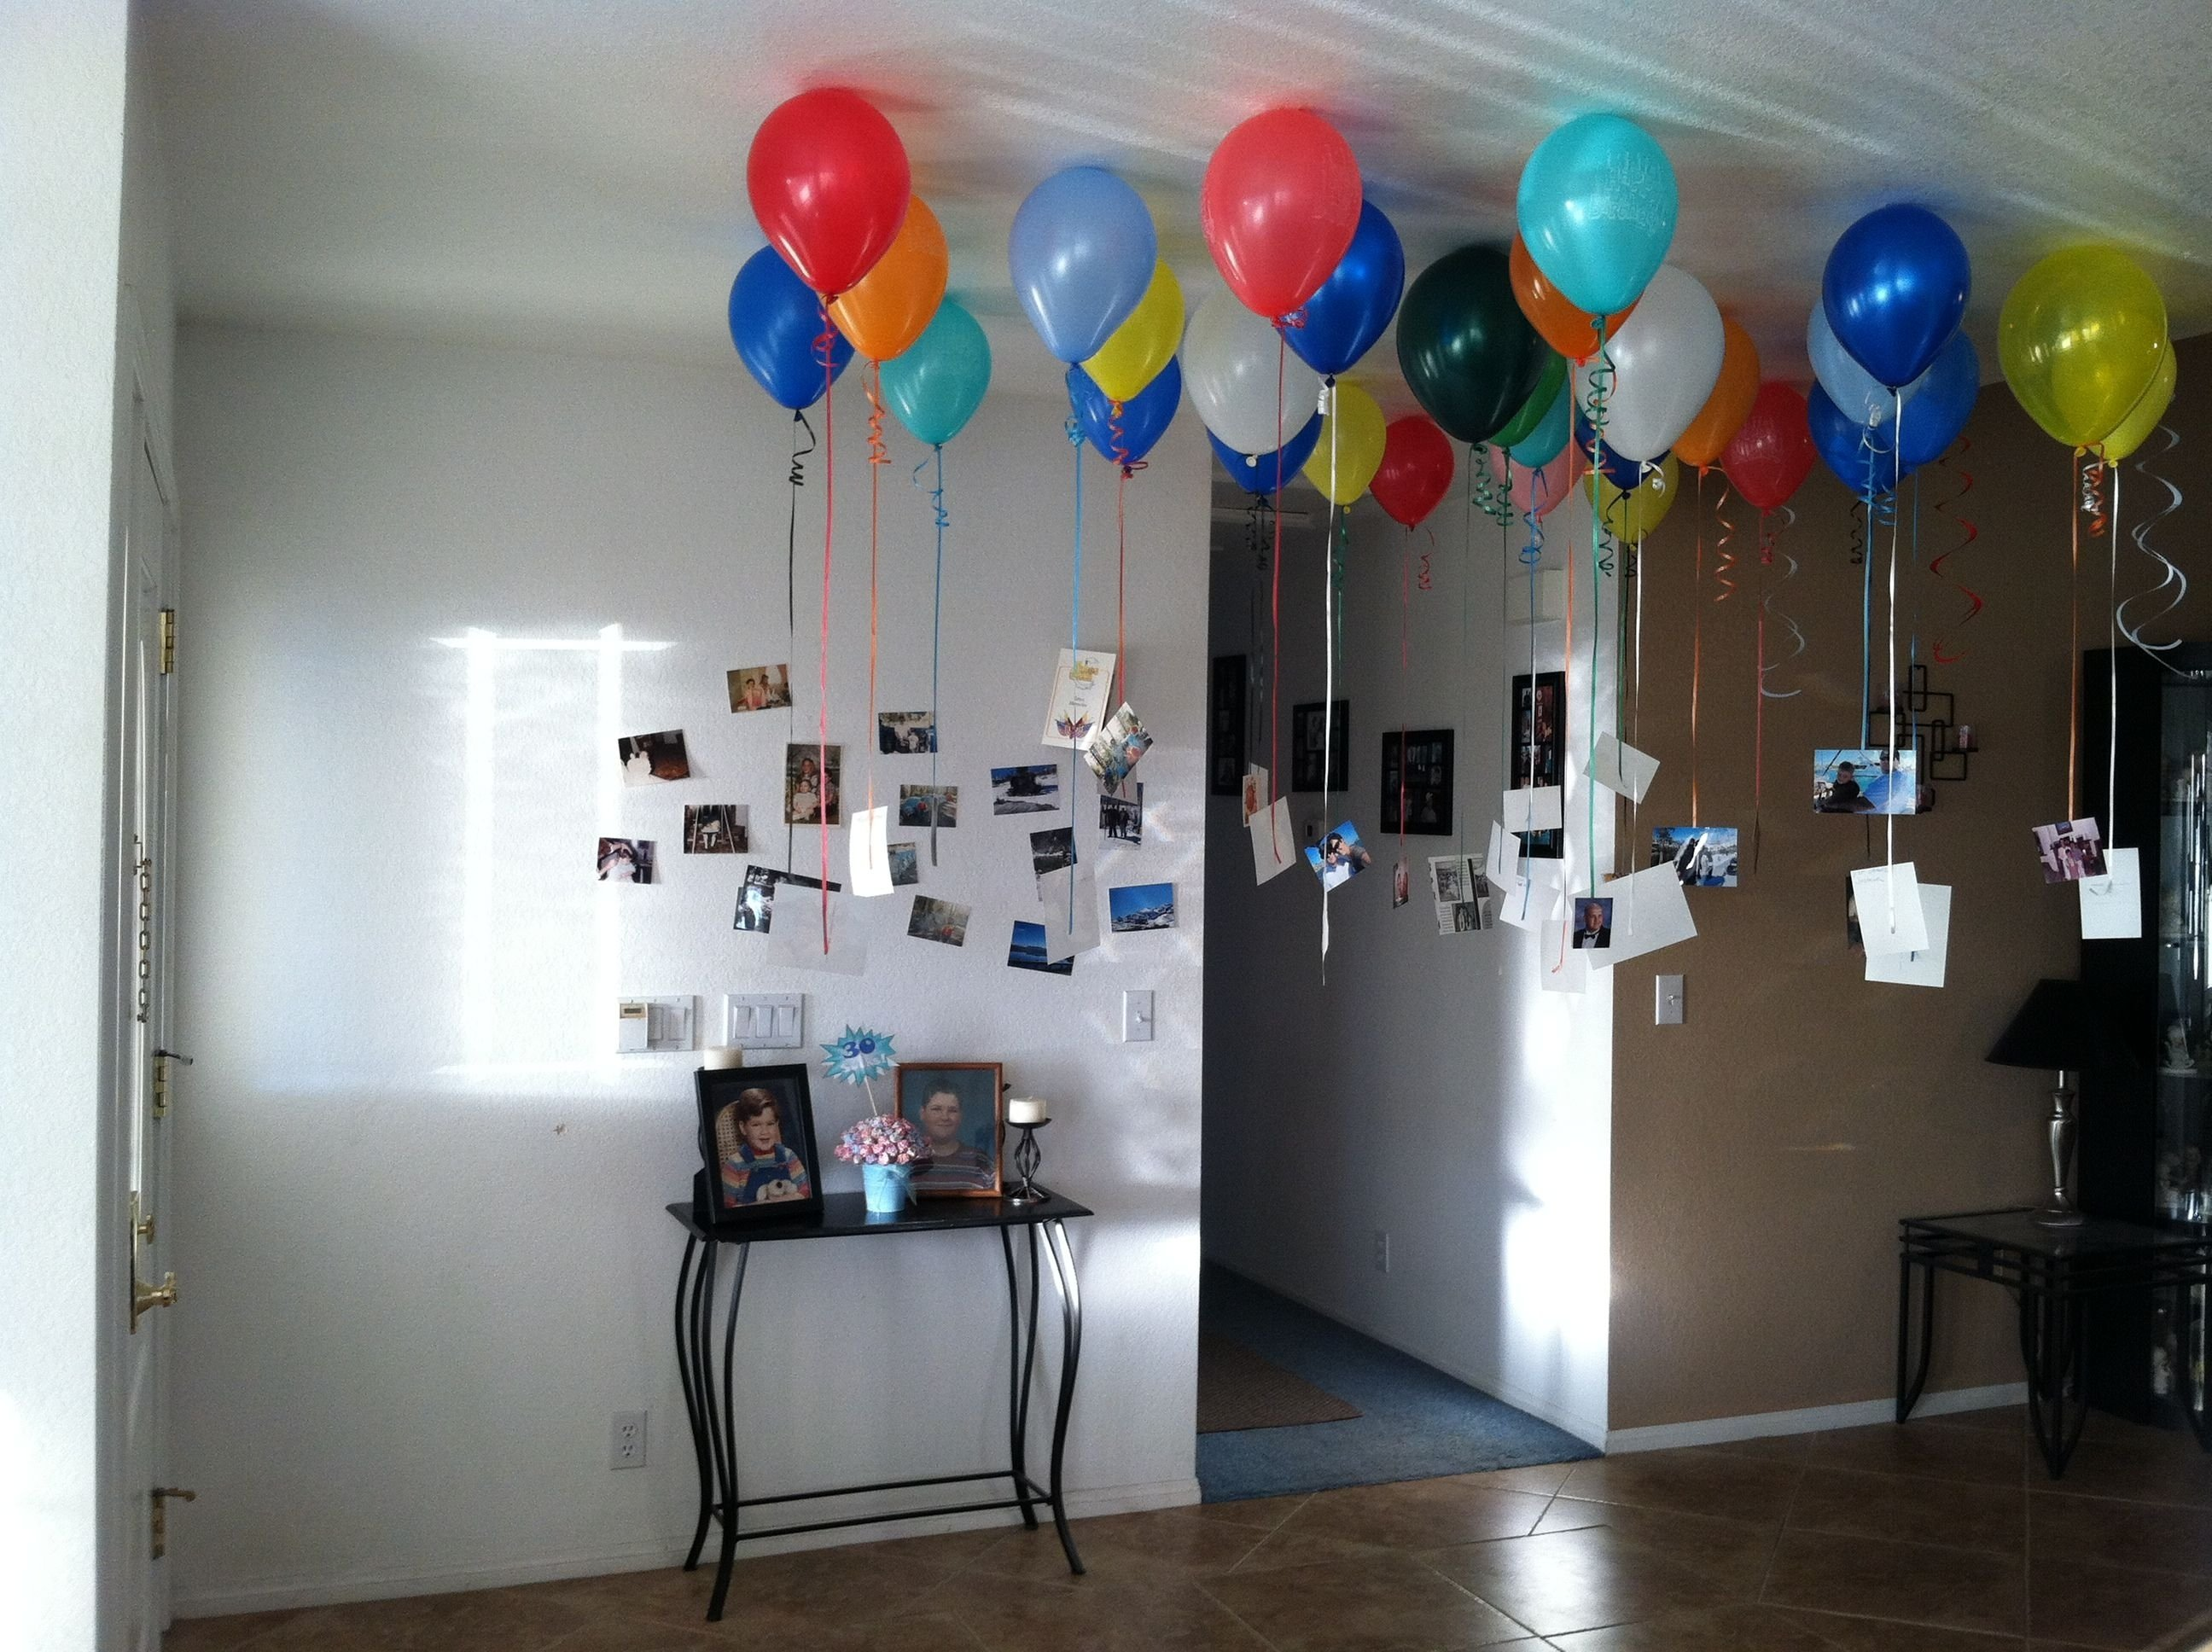 10 Trendy Unique Birthday Ideas For Him did this in my entry way for husbands 30th birthday 30 balloons 10